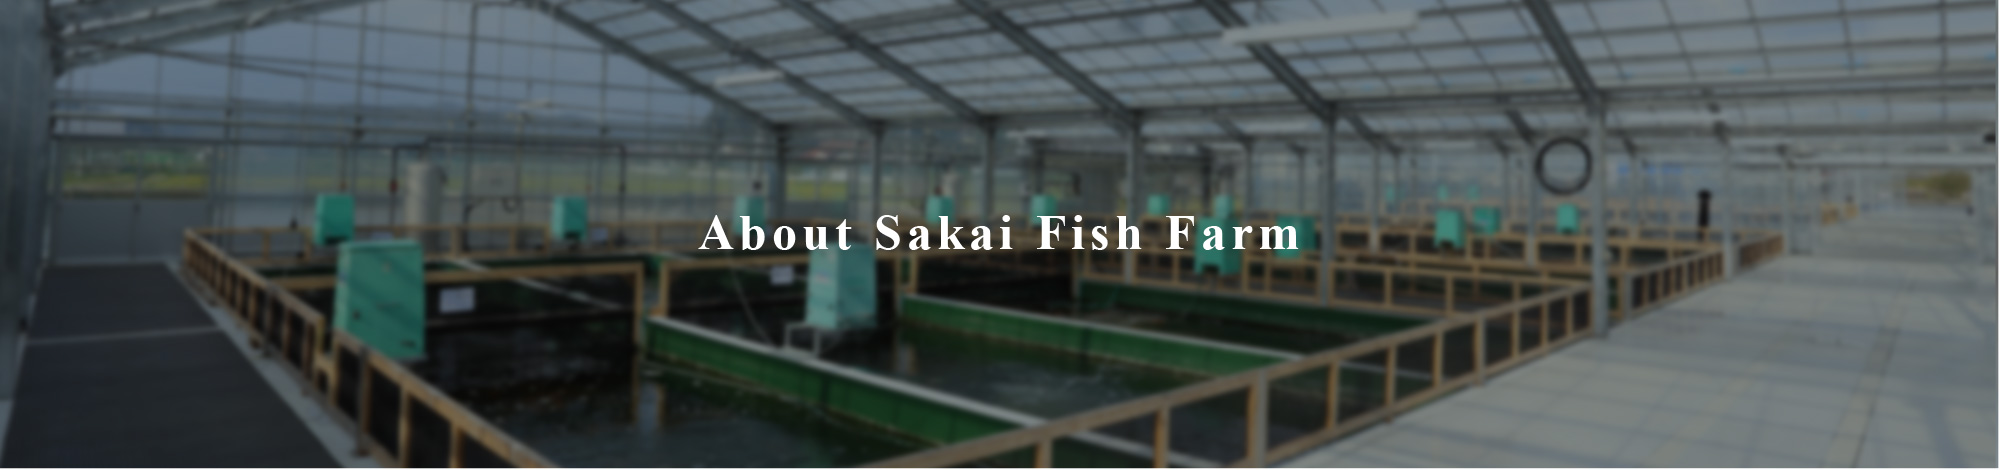 About Sakai Fish Farm